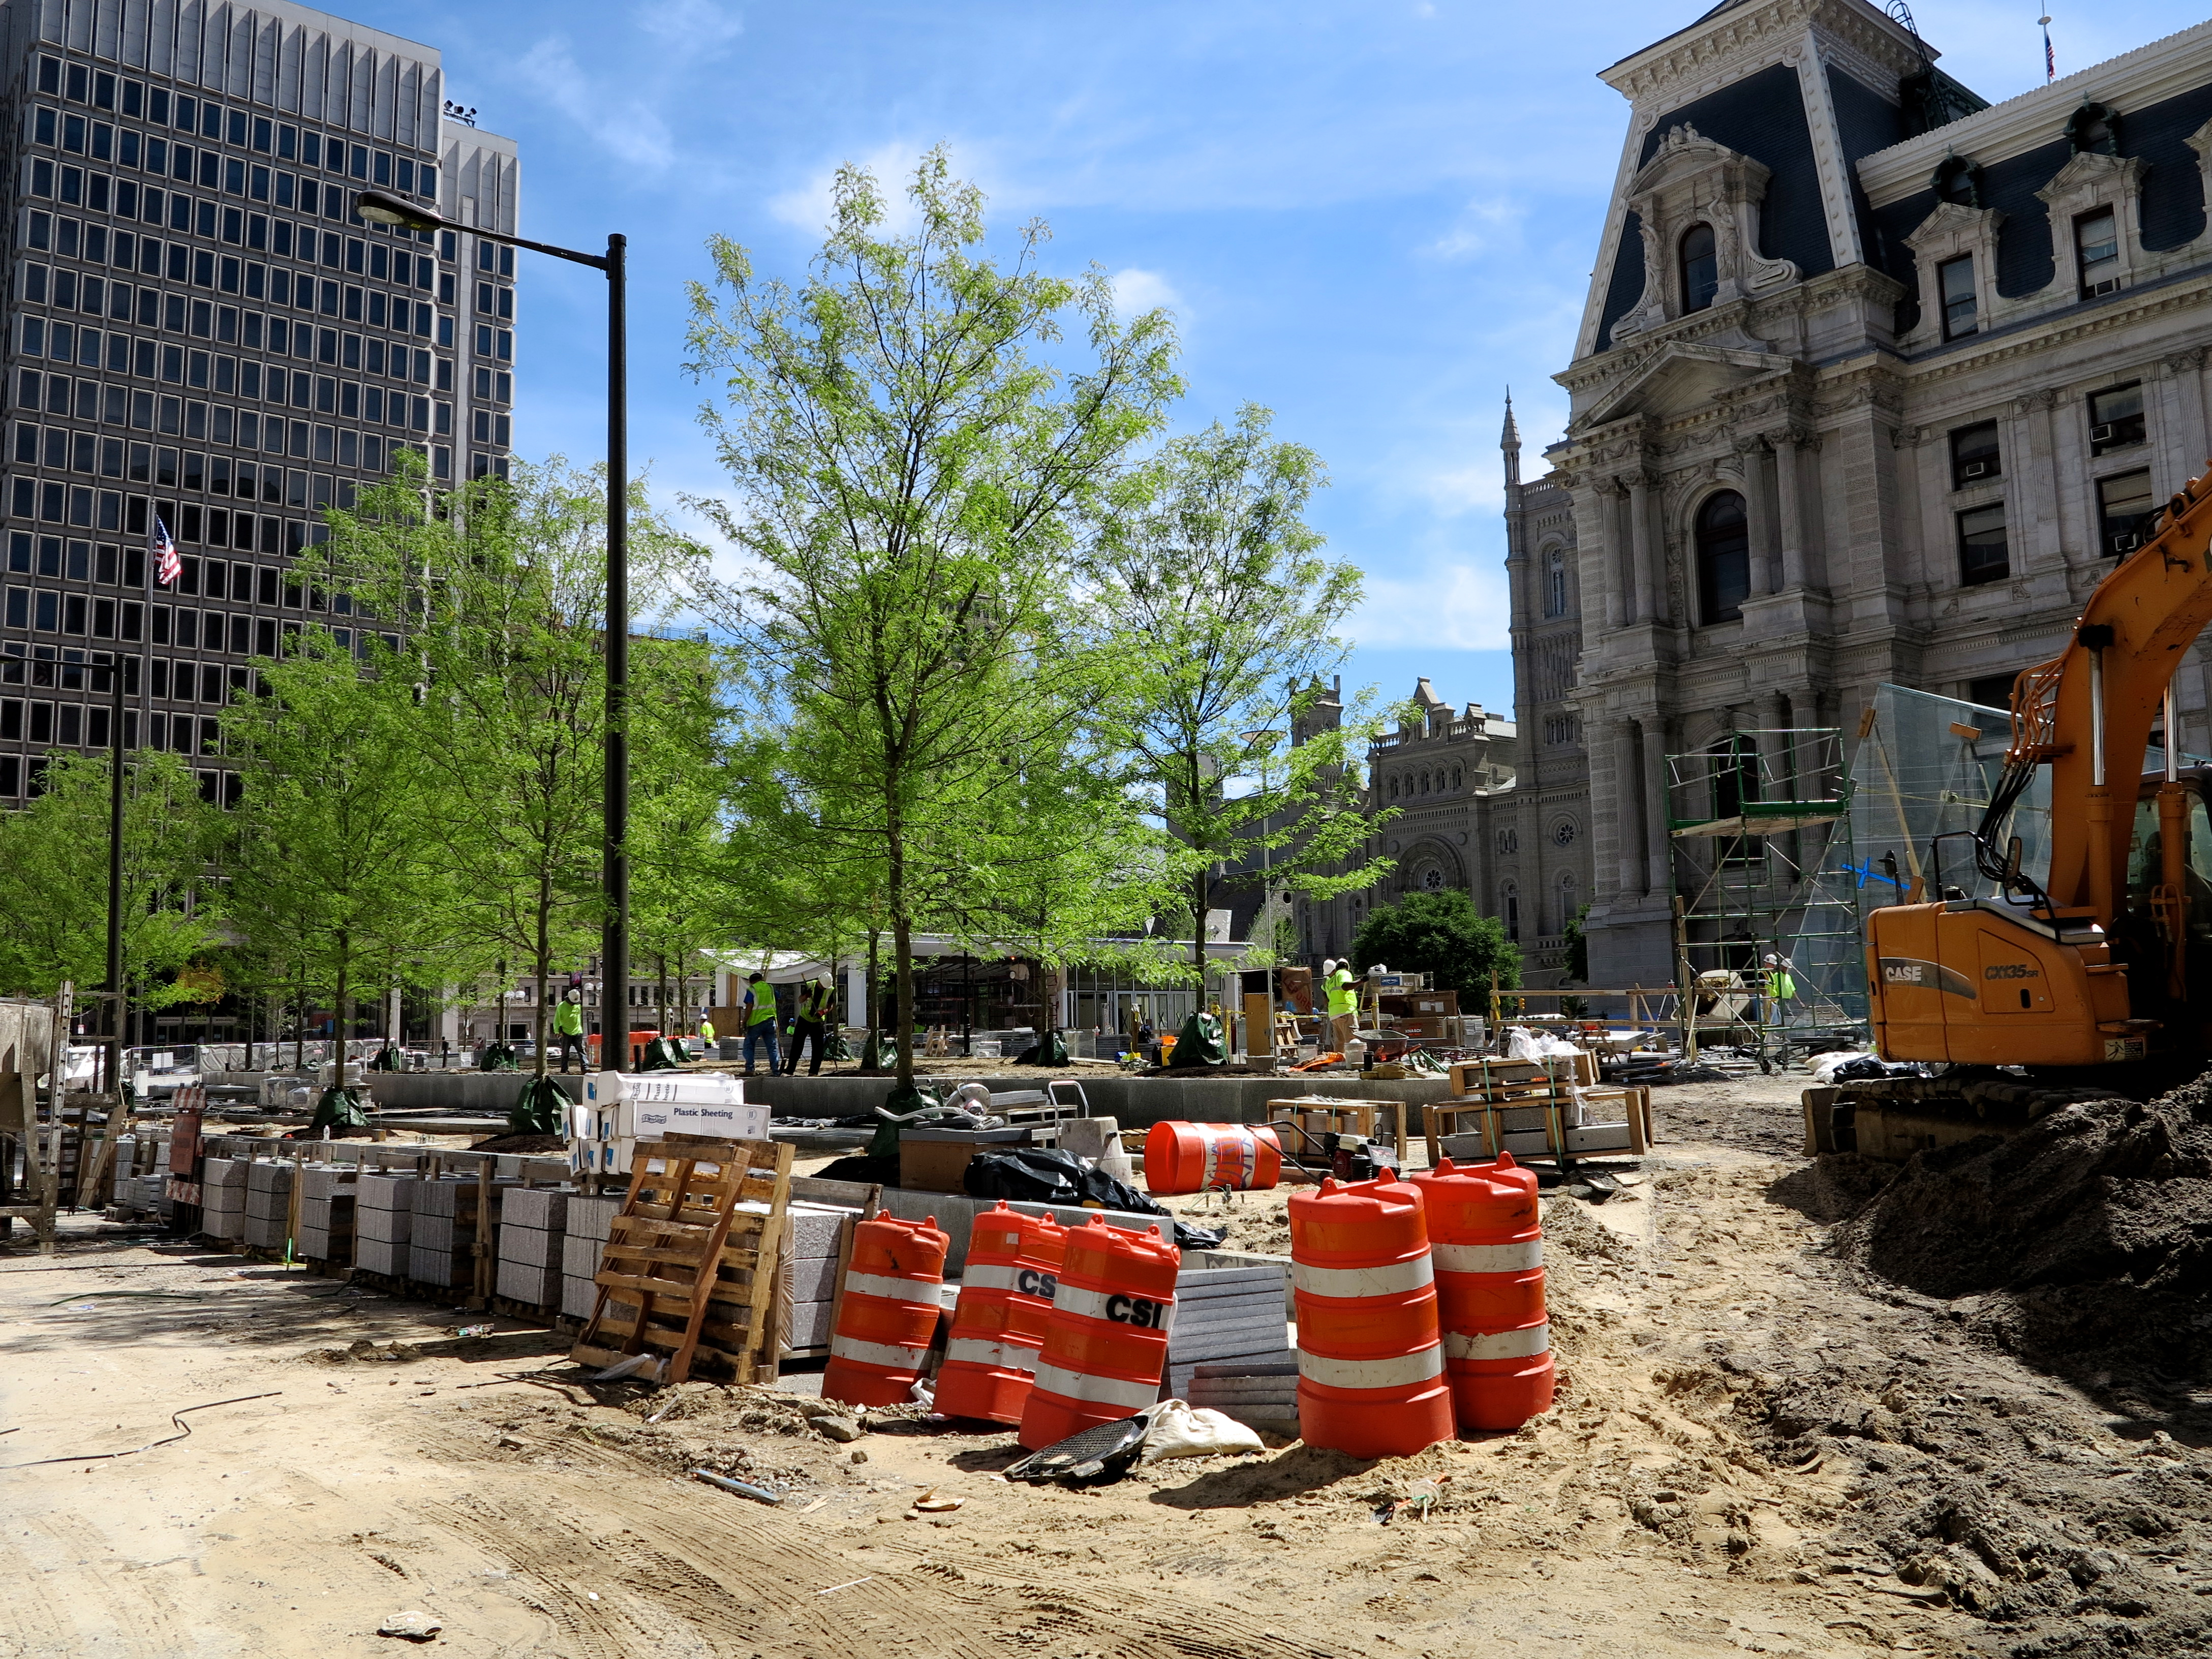 Trees planted at Dilworth Plaza, June 2014